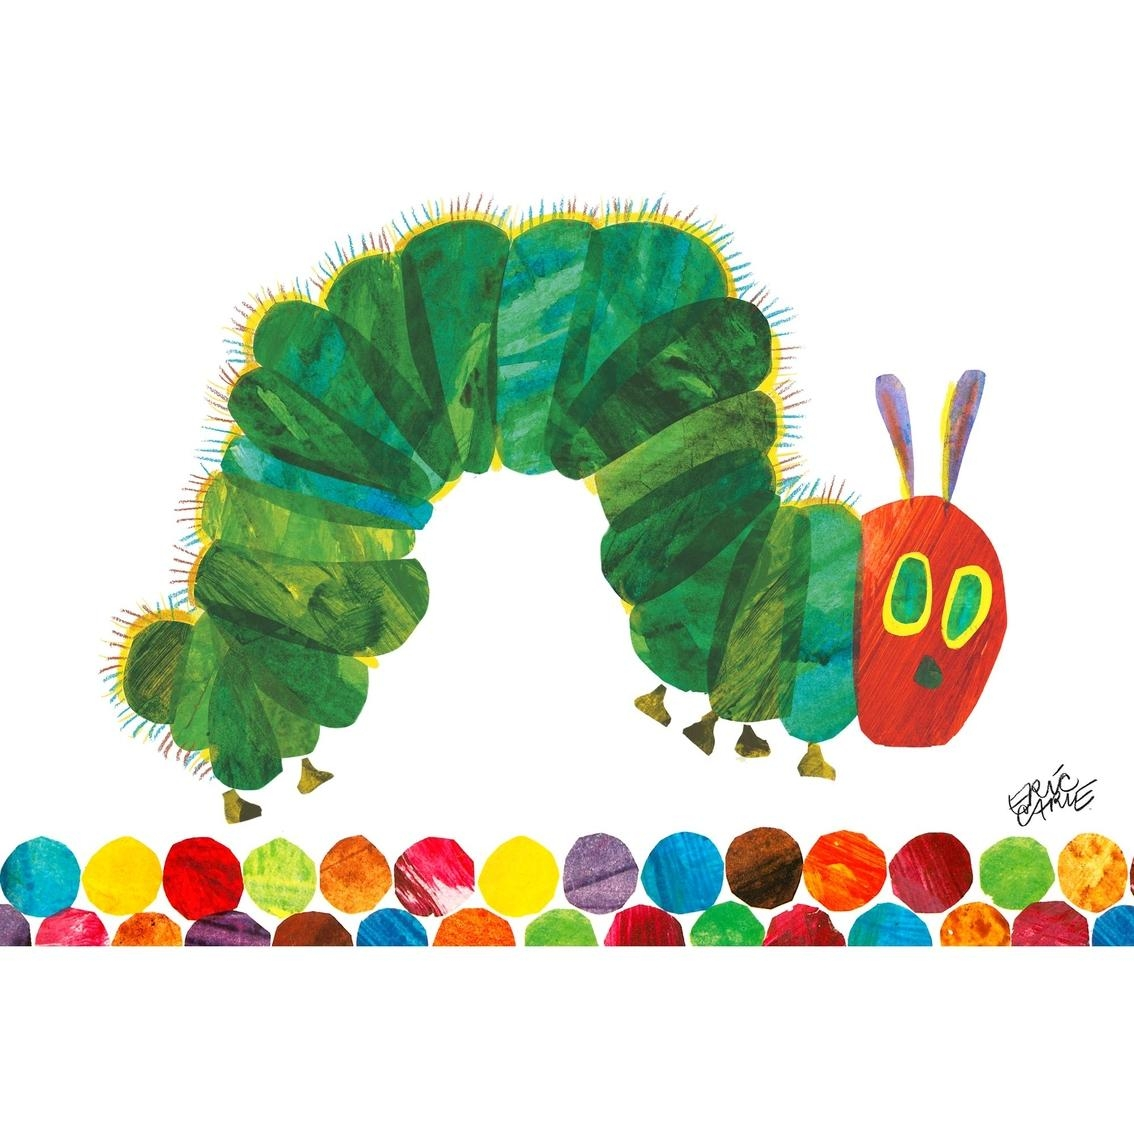 Greenbox Art 24 X 18 Eric Carle's The Very Hungry Caterpillar Throughout Very Hungry Caterpillar Wall Art (Image 9 of 20)